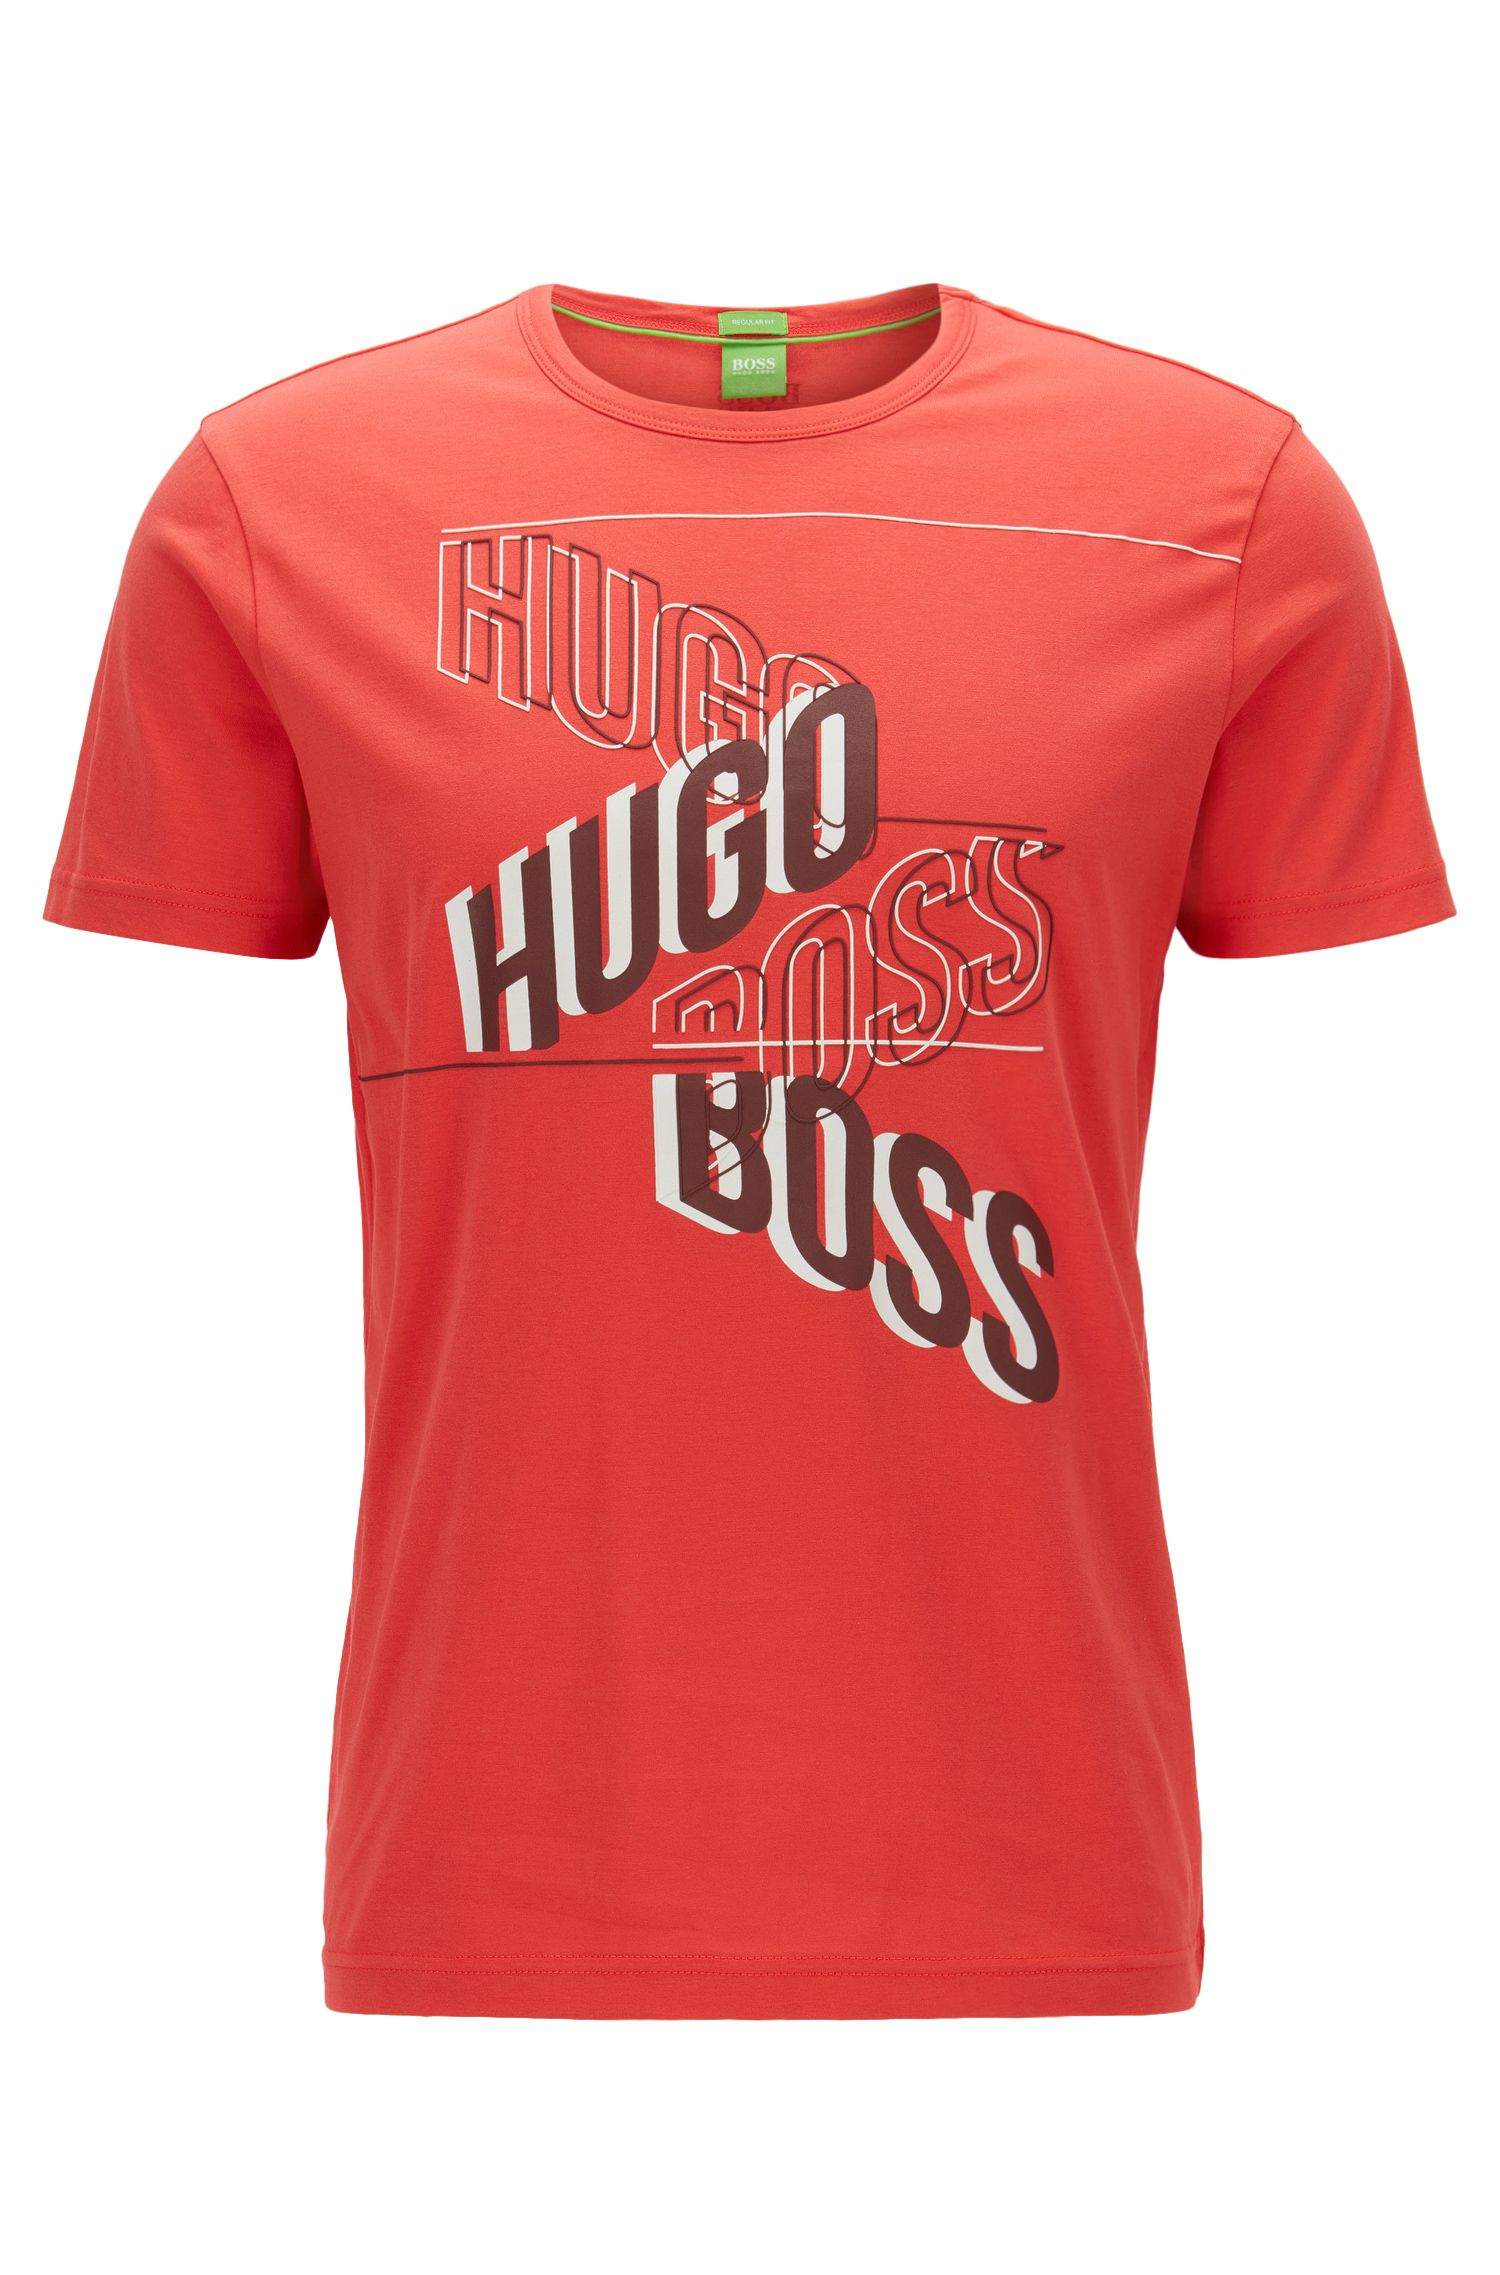 Camiseta regular fit estampada en punto sencillo